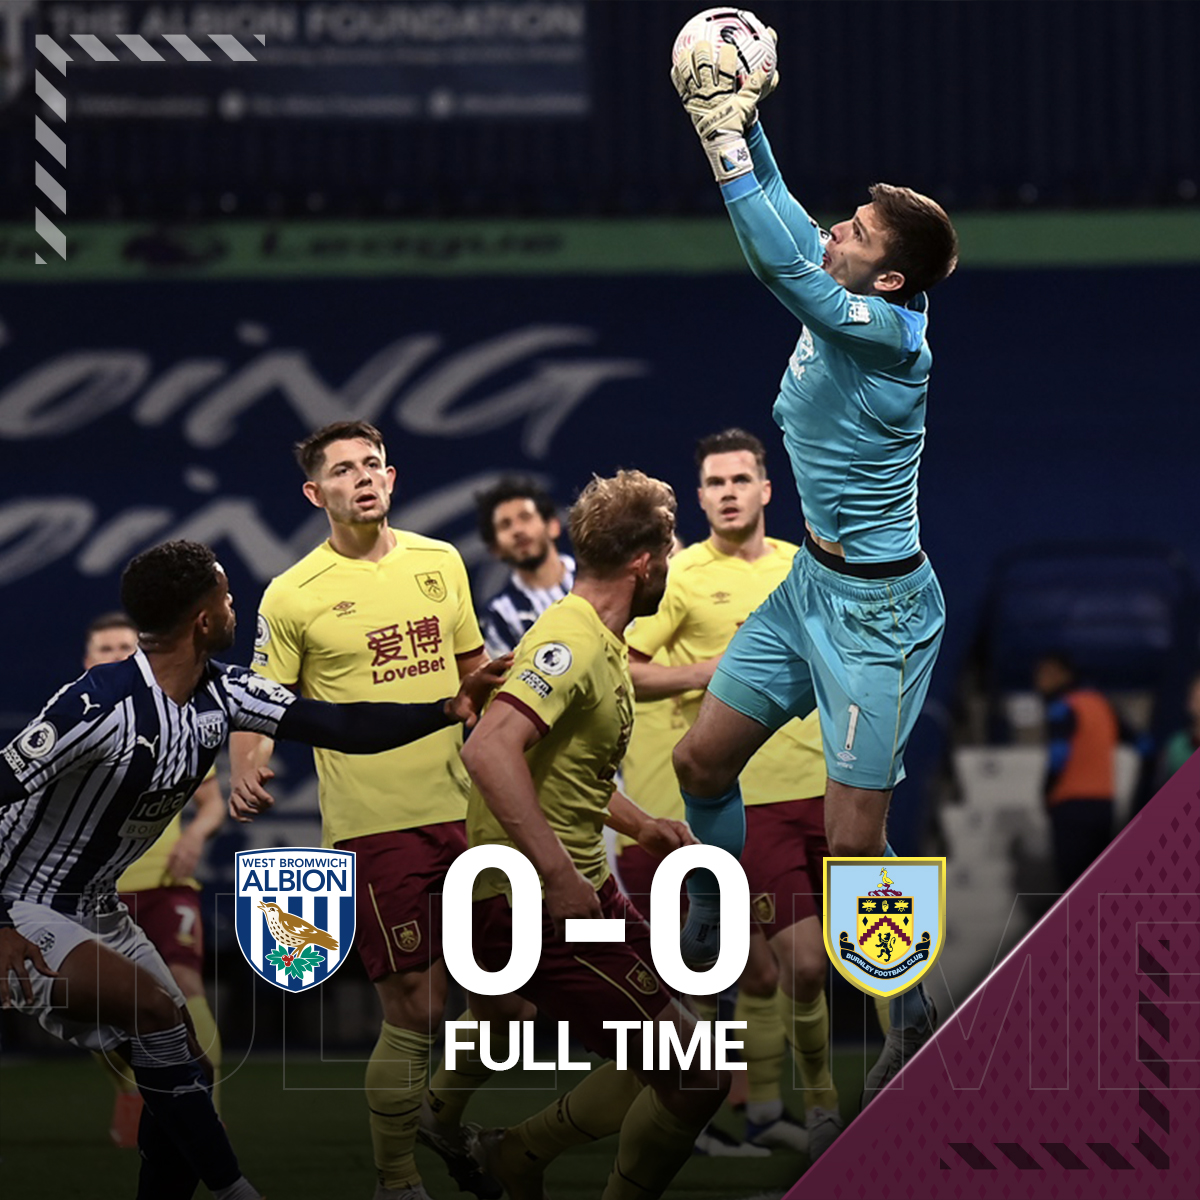 FULL TIME: West Brom 0 -0 Burnley  The points are shared at the Hawthorns. https://t.co/1LkrLBgYoI